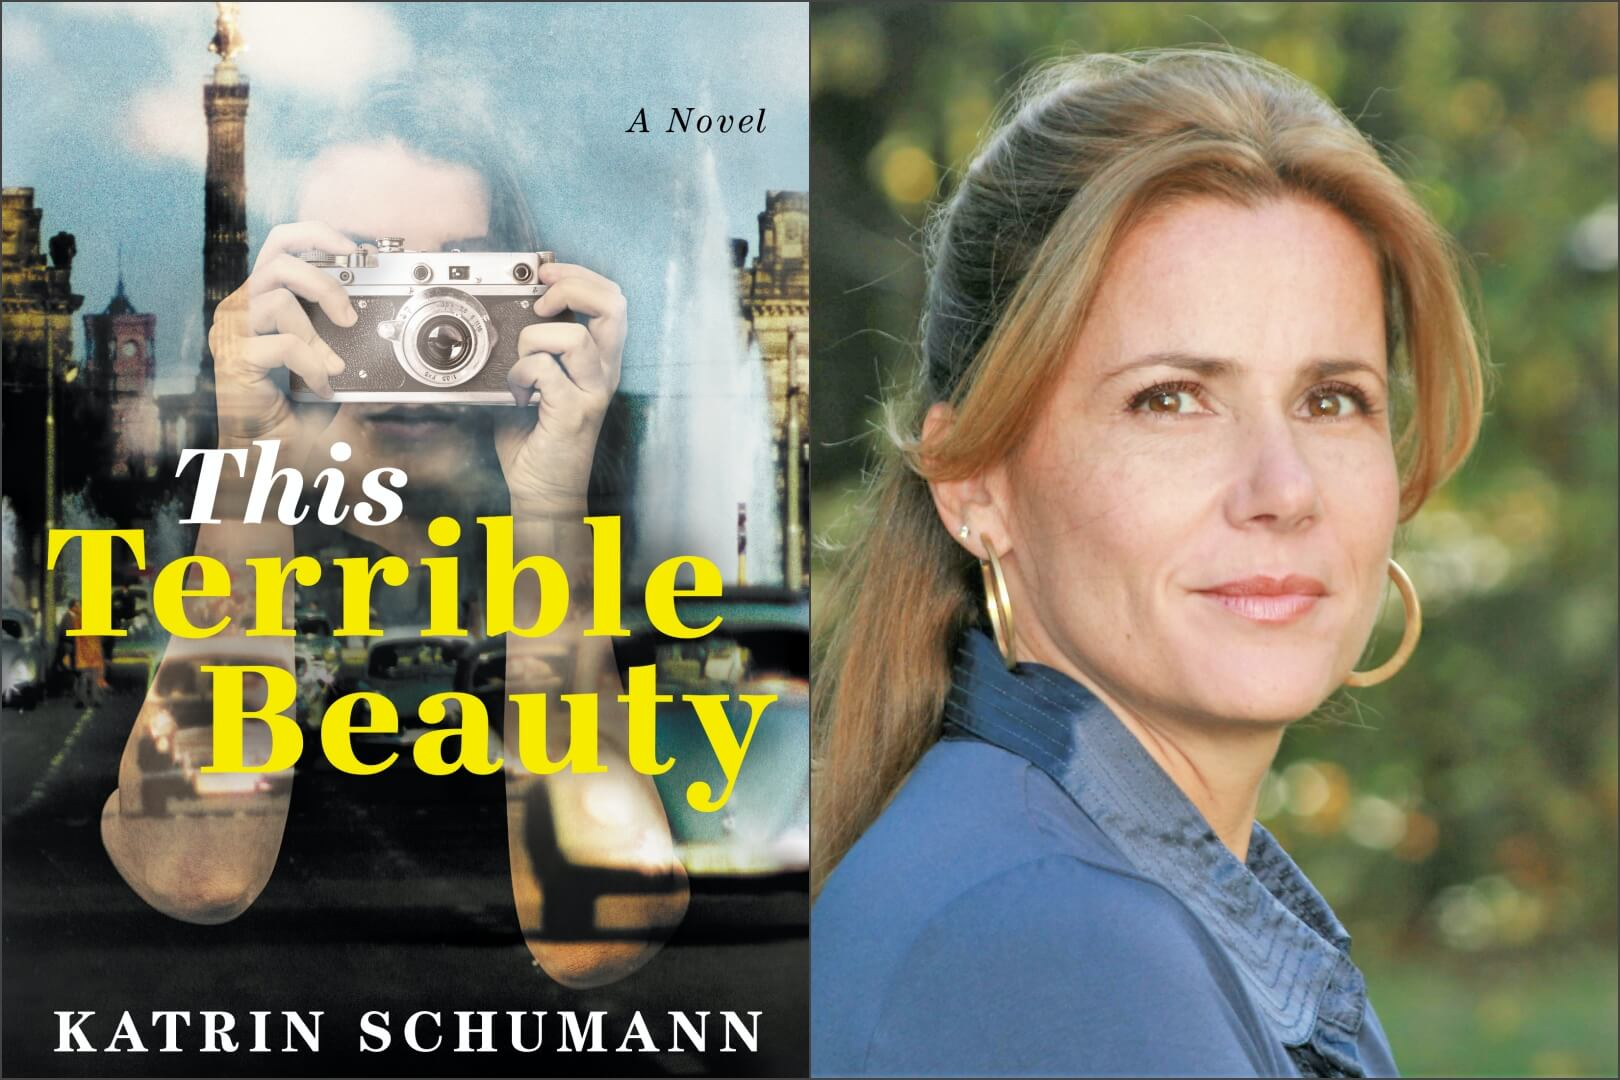 katrin schumann - this terrible beauty - book club chat